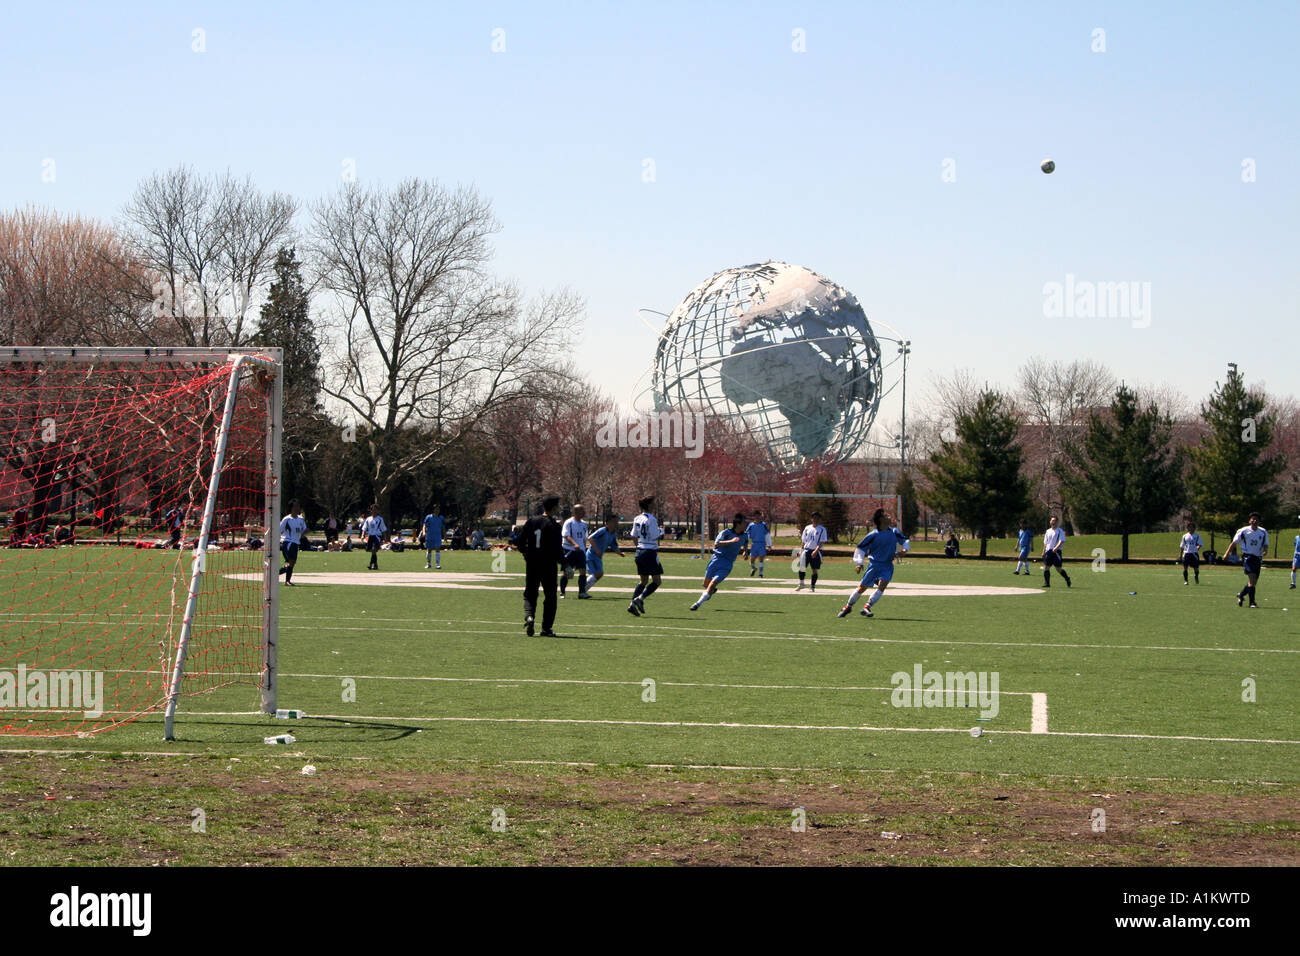 Football (Soccer) ball in flight in front of Unisphere, Queens NYC - Stock Image